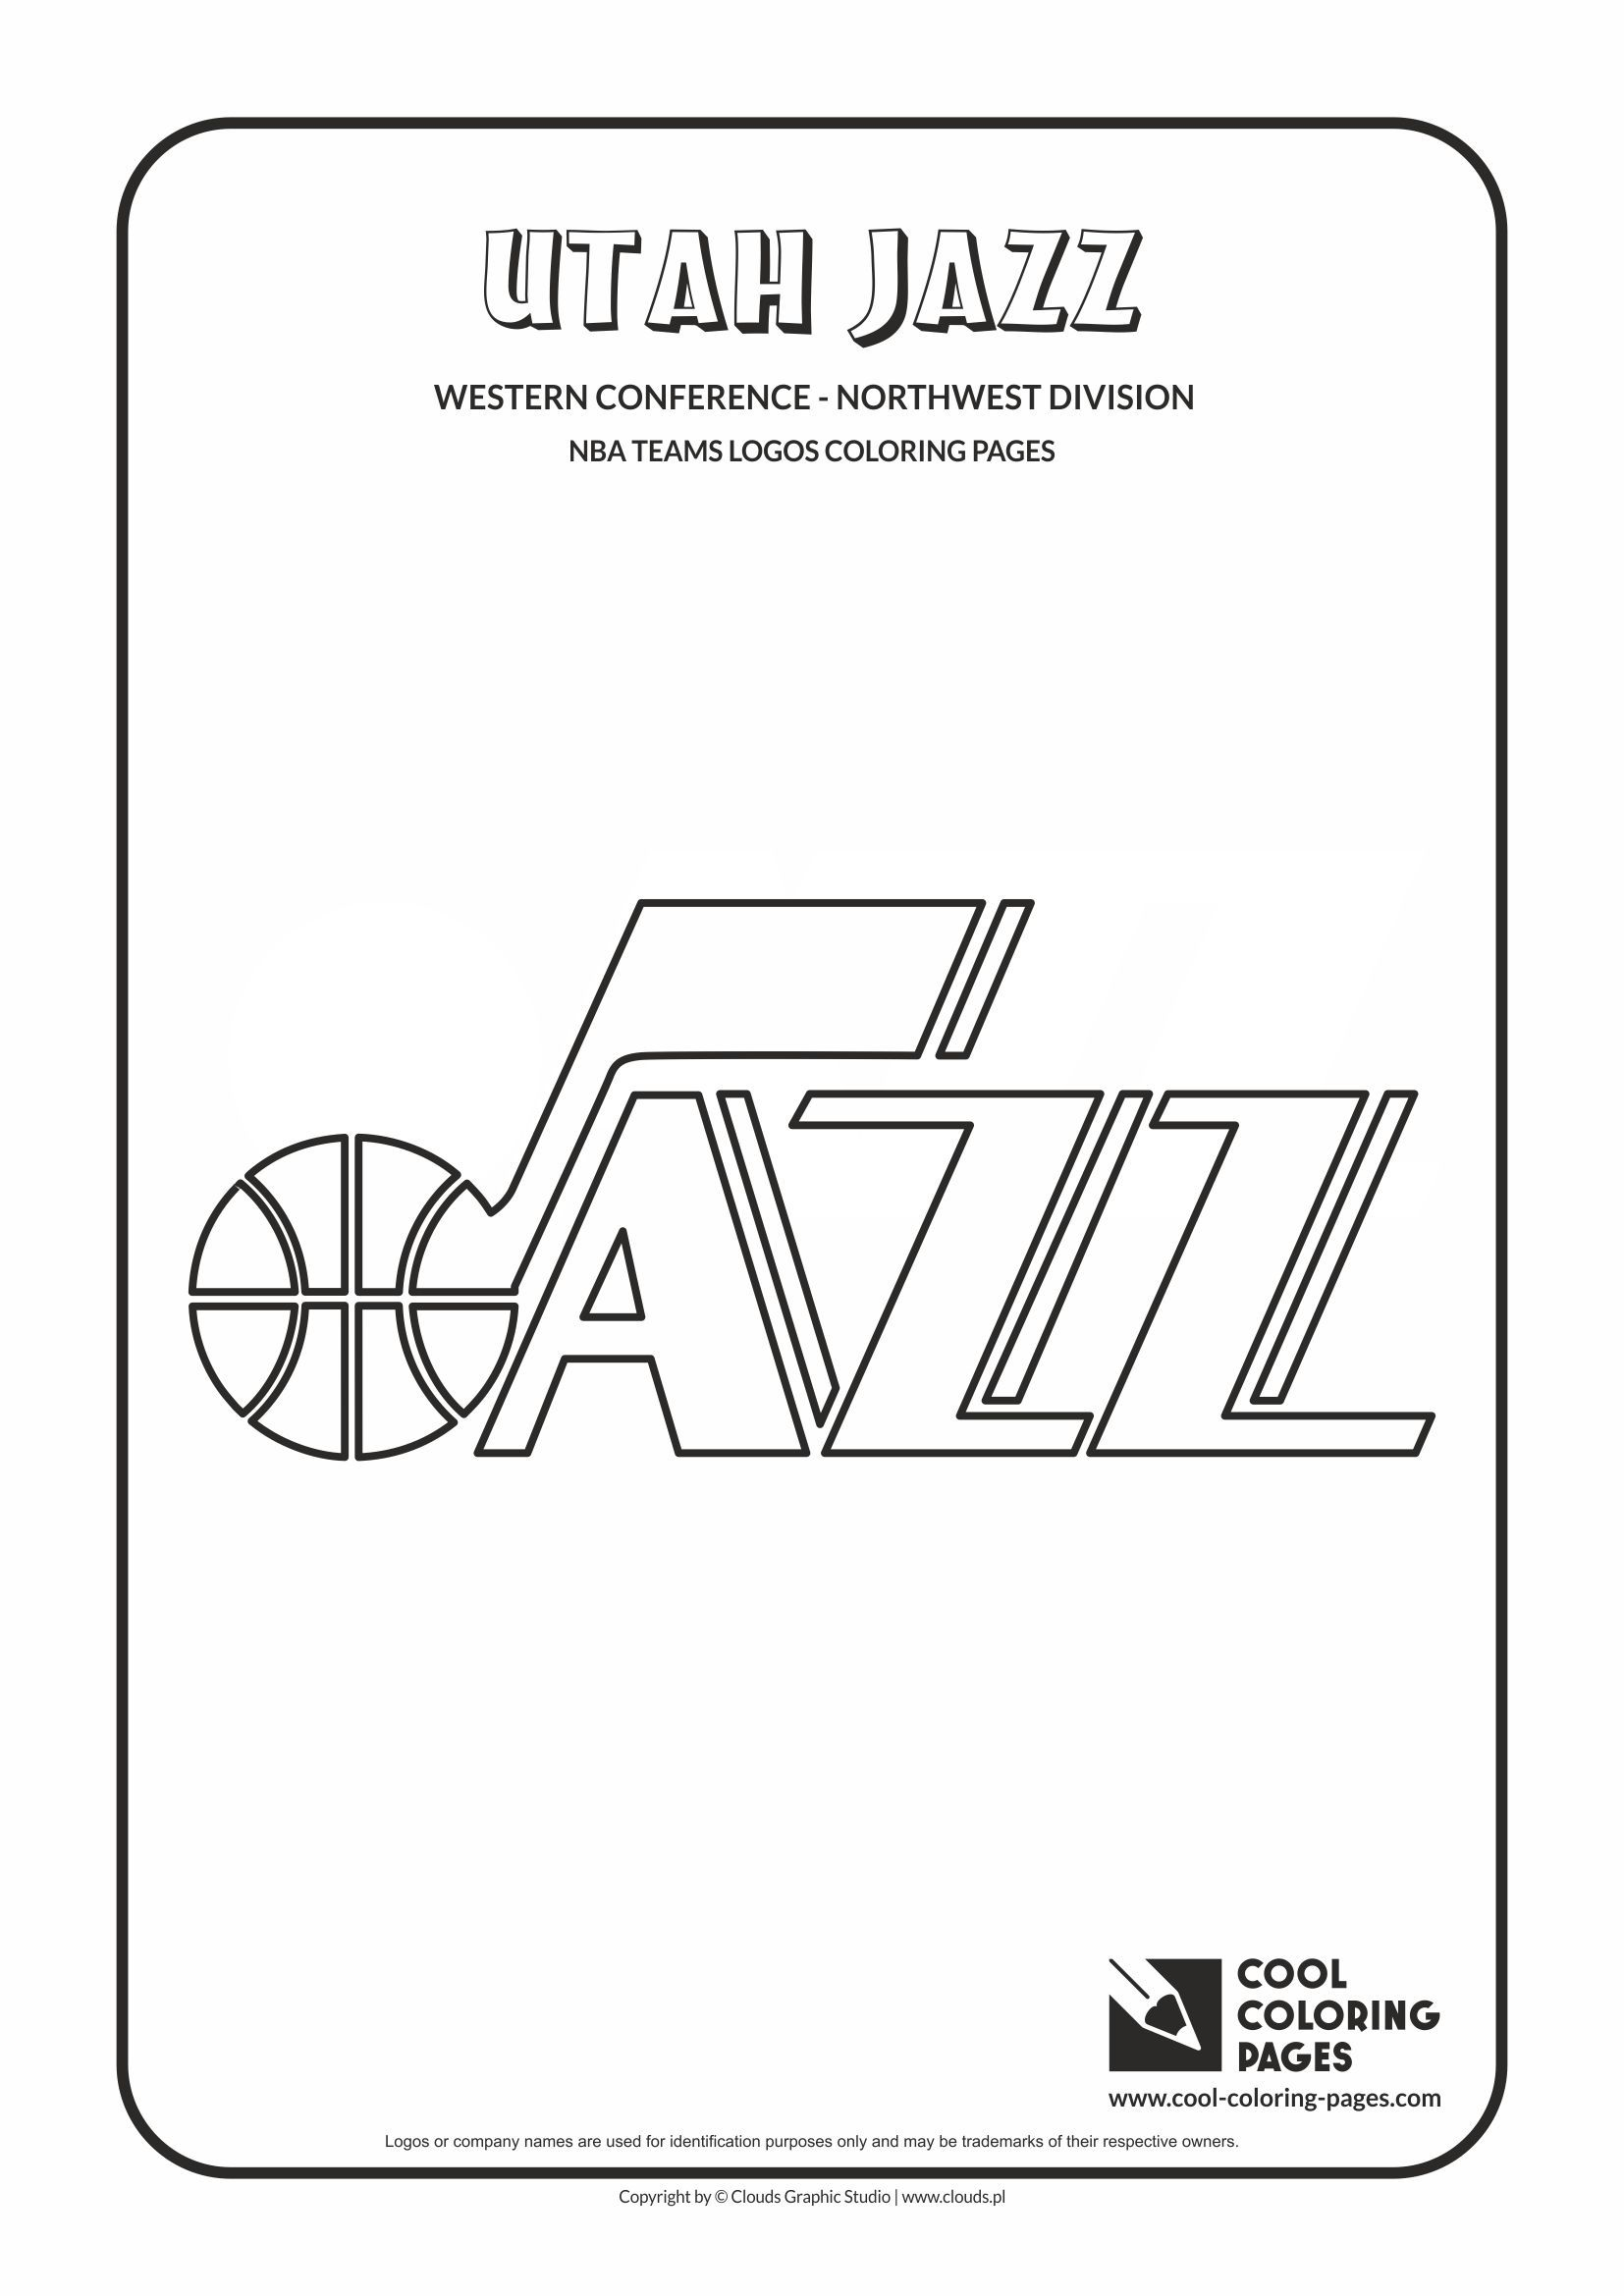 utah jazz coloring pages Cool Coloring Pages   NBA Basketball Clubs Logos   Western  utah jazz coloring pages